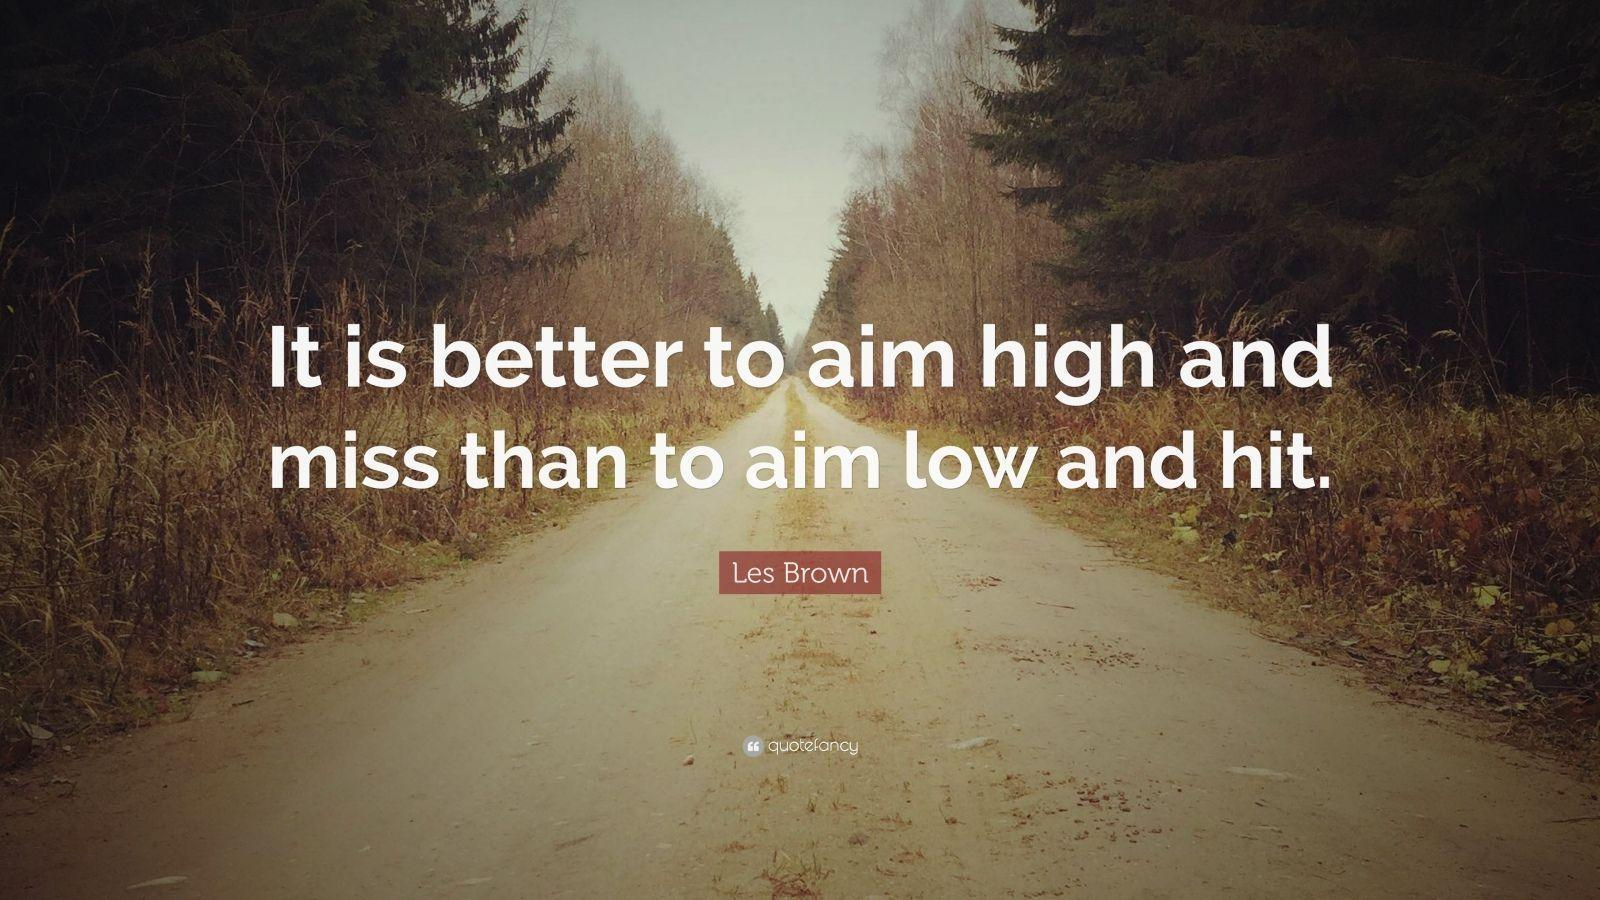 It is better to aim high and miss than to aim low and hit. -Les Brown